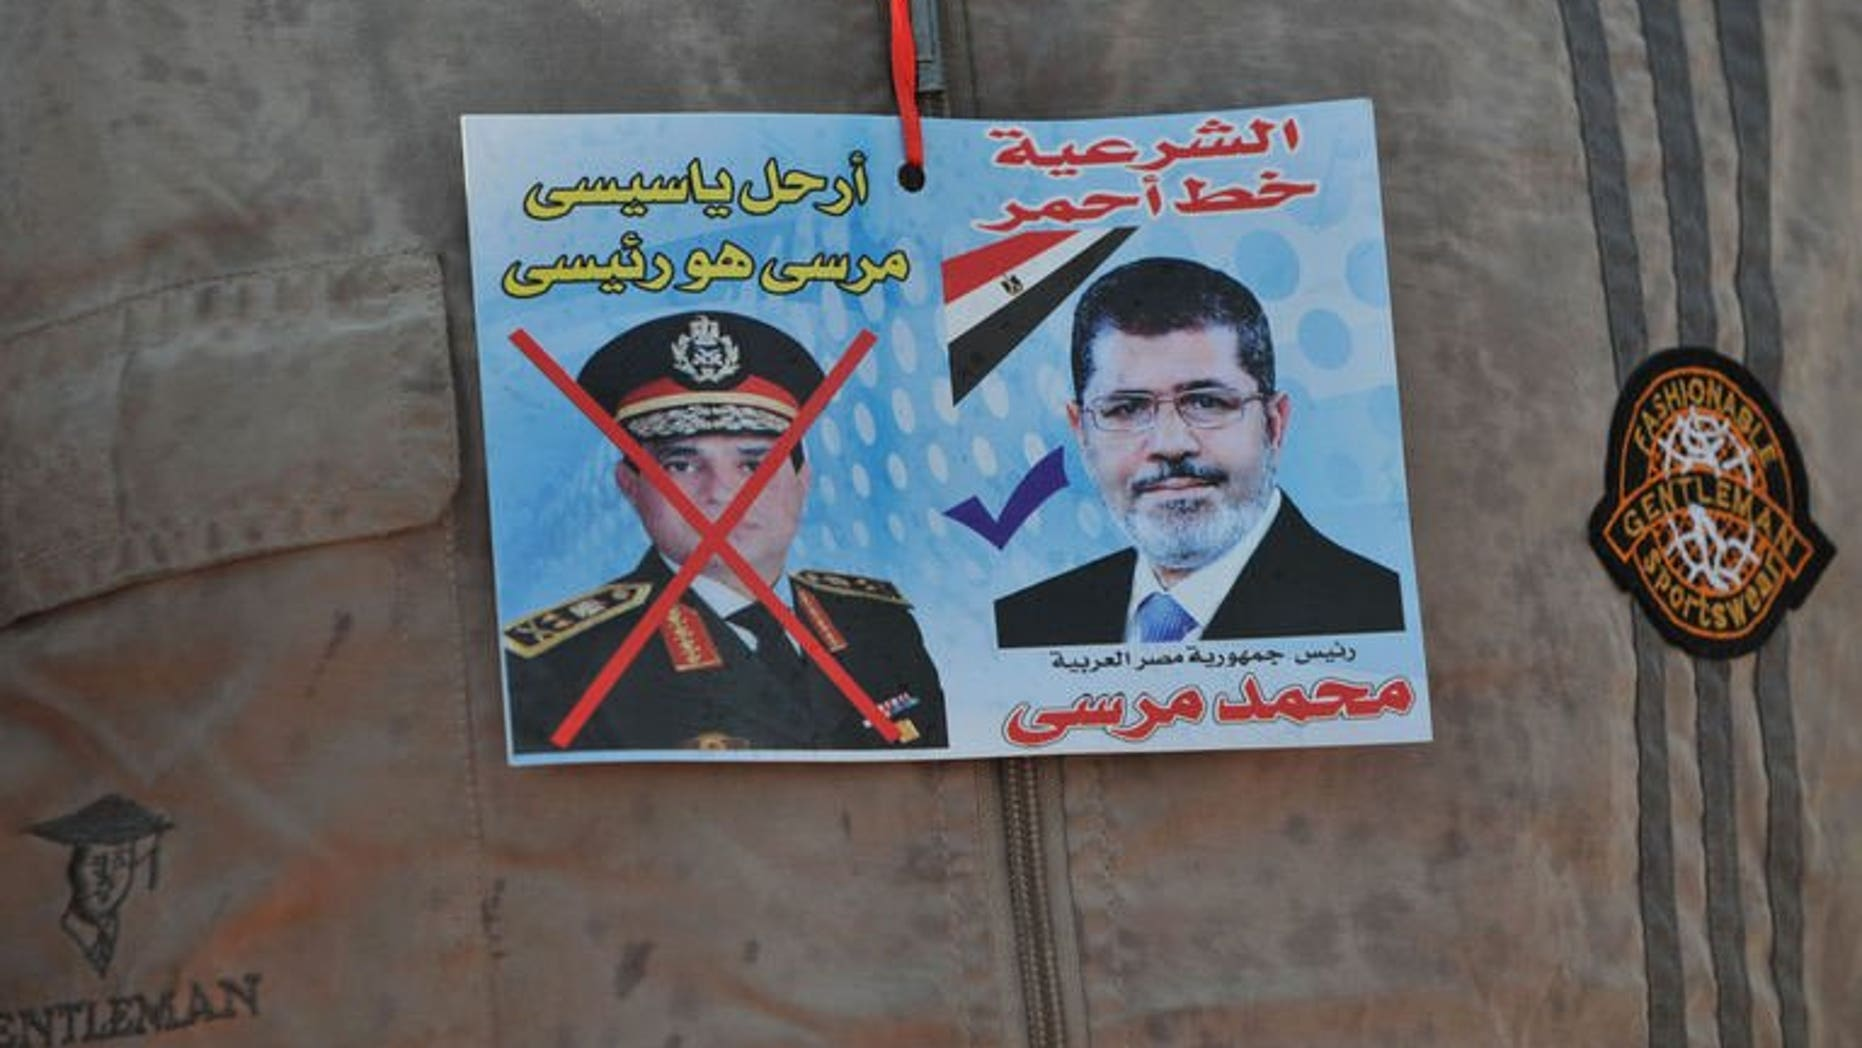 """A sticker on the shirt of a supporter of Egypt's ousted president Mohamed Morsi shows Morsi (R) with text above it reading in Arabic: """"Legitimacy is the red line"""" and one of army chief Abdel Fattah al-Sisi (L) with text above reading in Arabic: """"Leave Sisi, Morsi is the president"""" outside Cairo's Rabaa al-Adawiya mosque on July 24, 2013."""